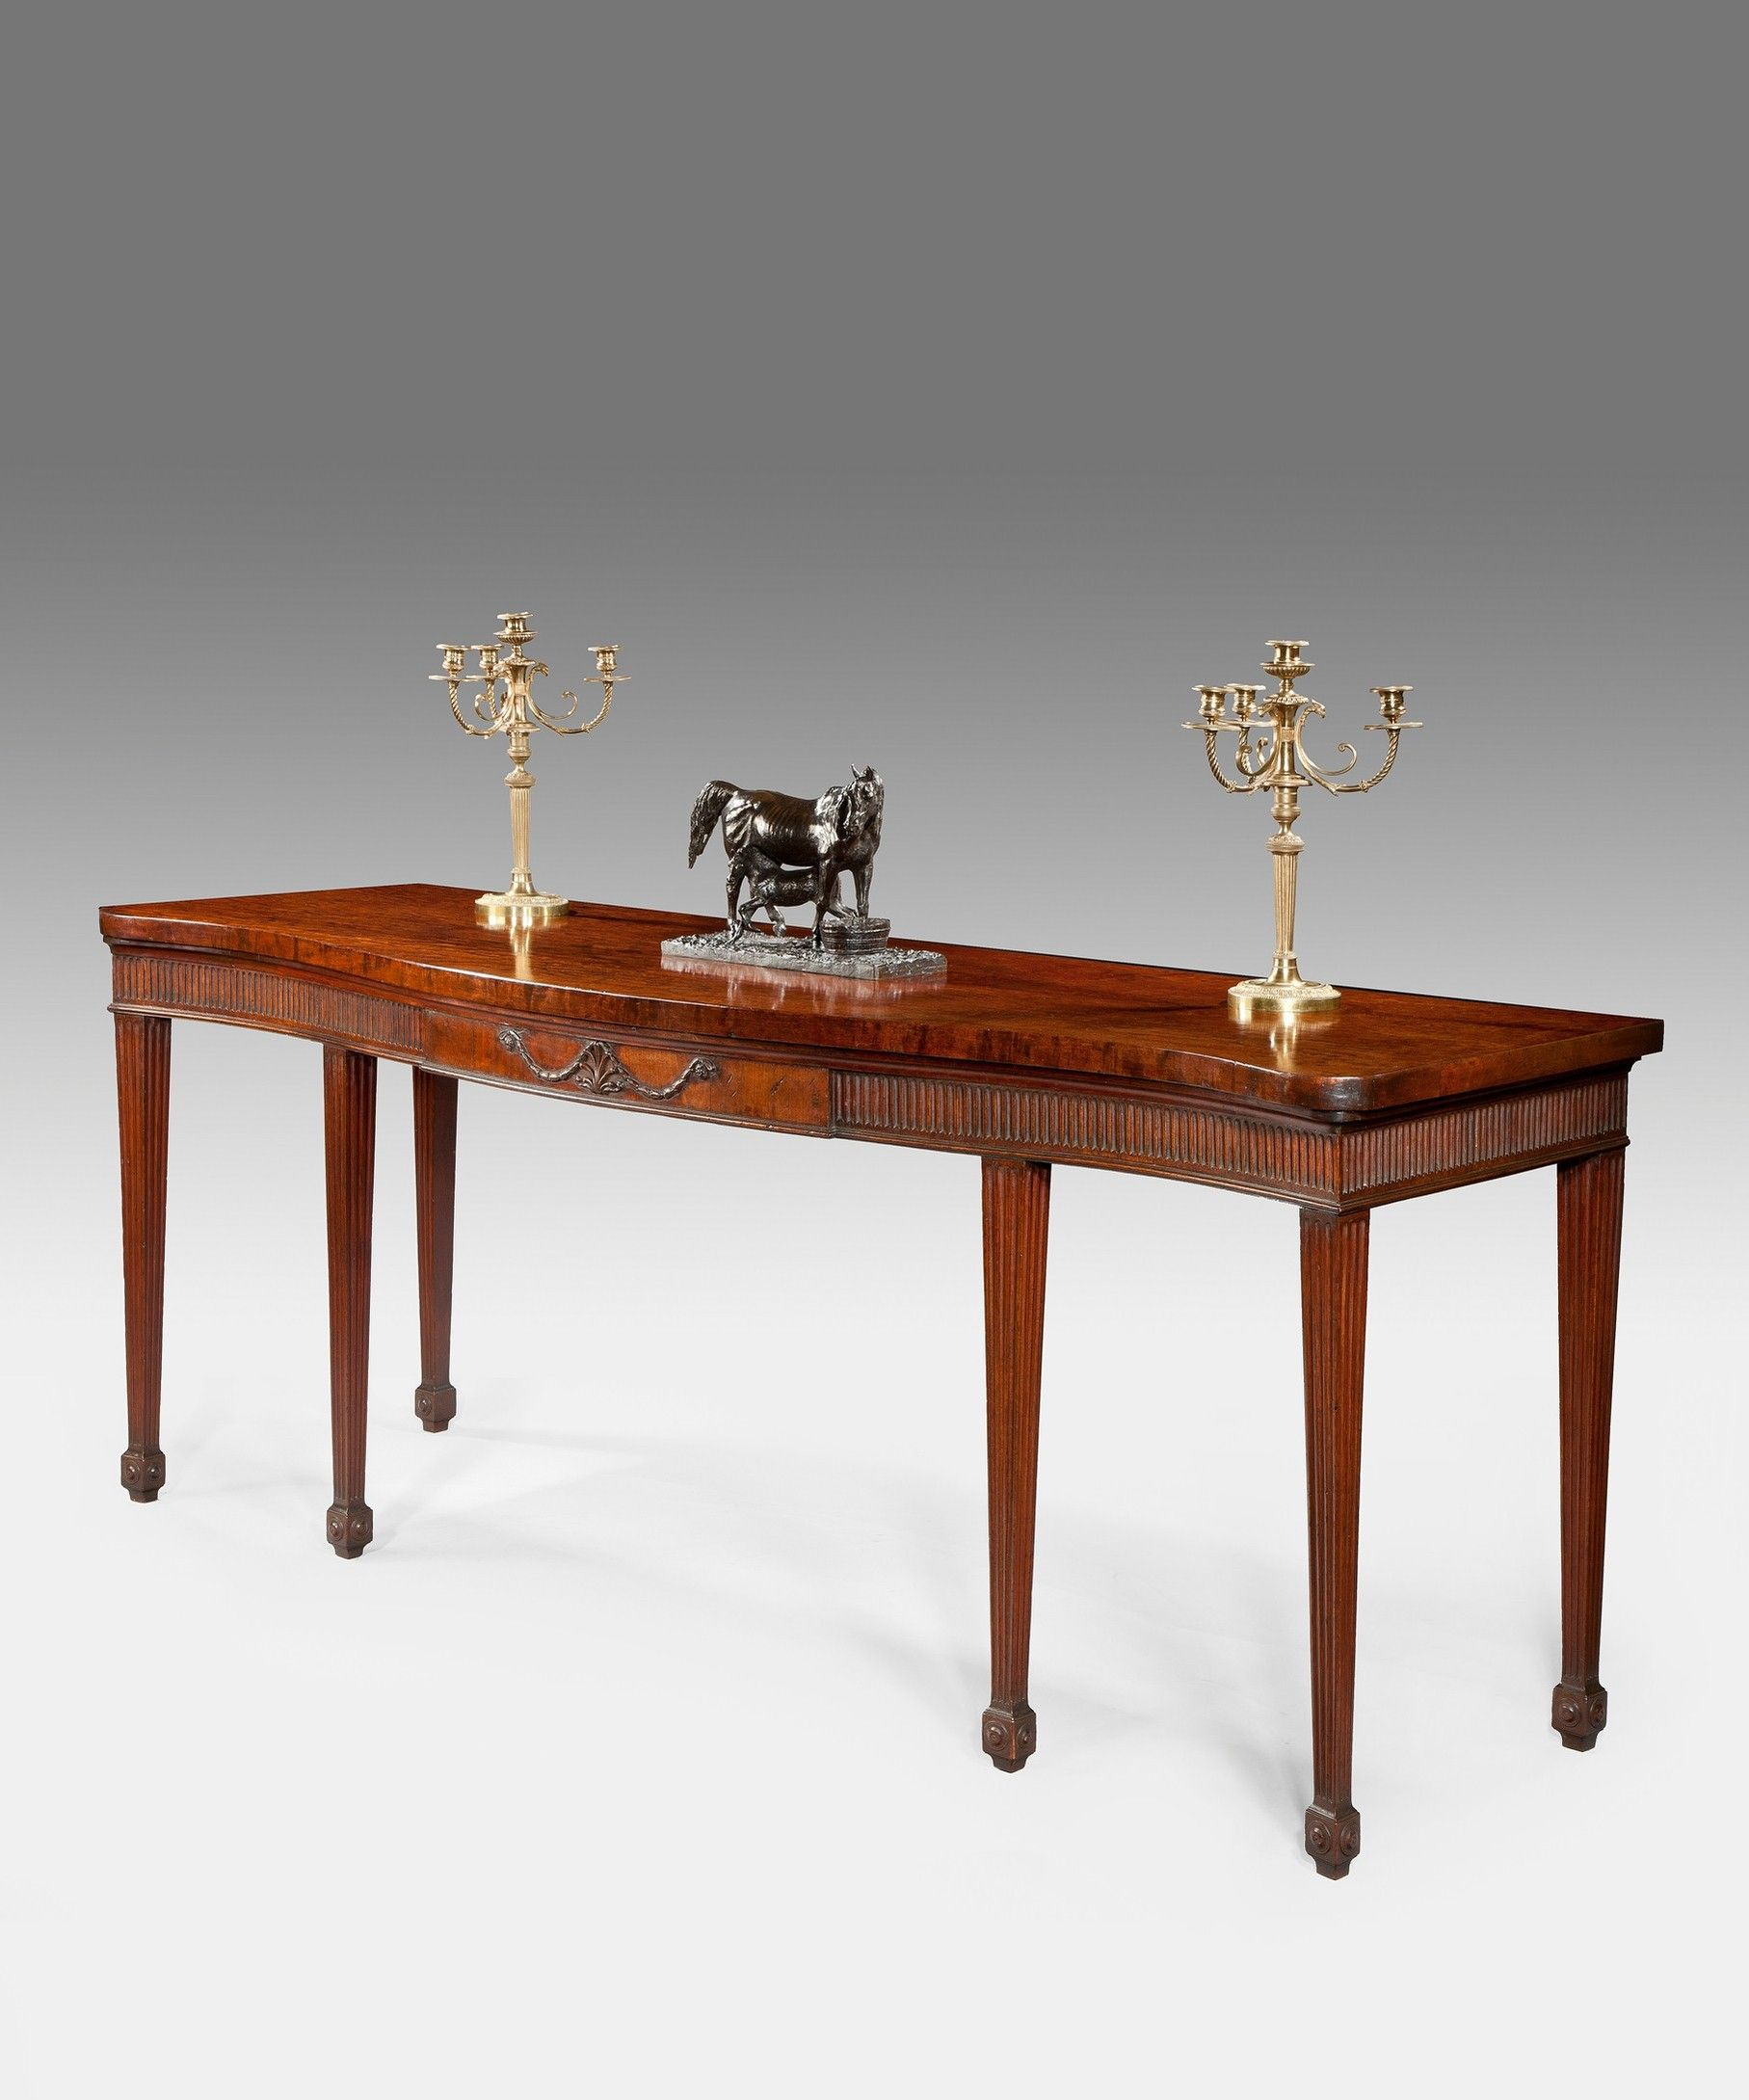 A Chippendale Mahogany Serving Table Georgian Furniture Chippendale Furniture Furniture